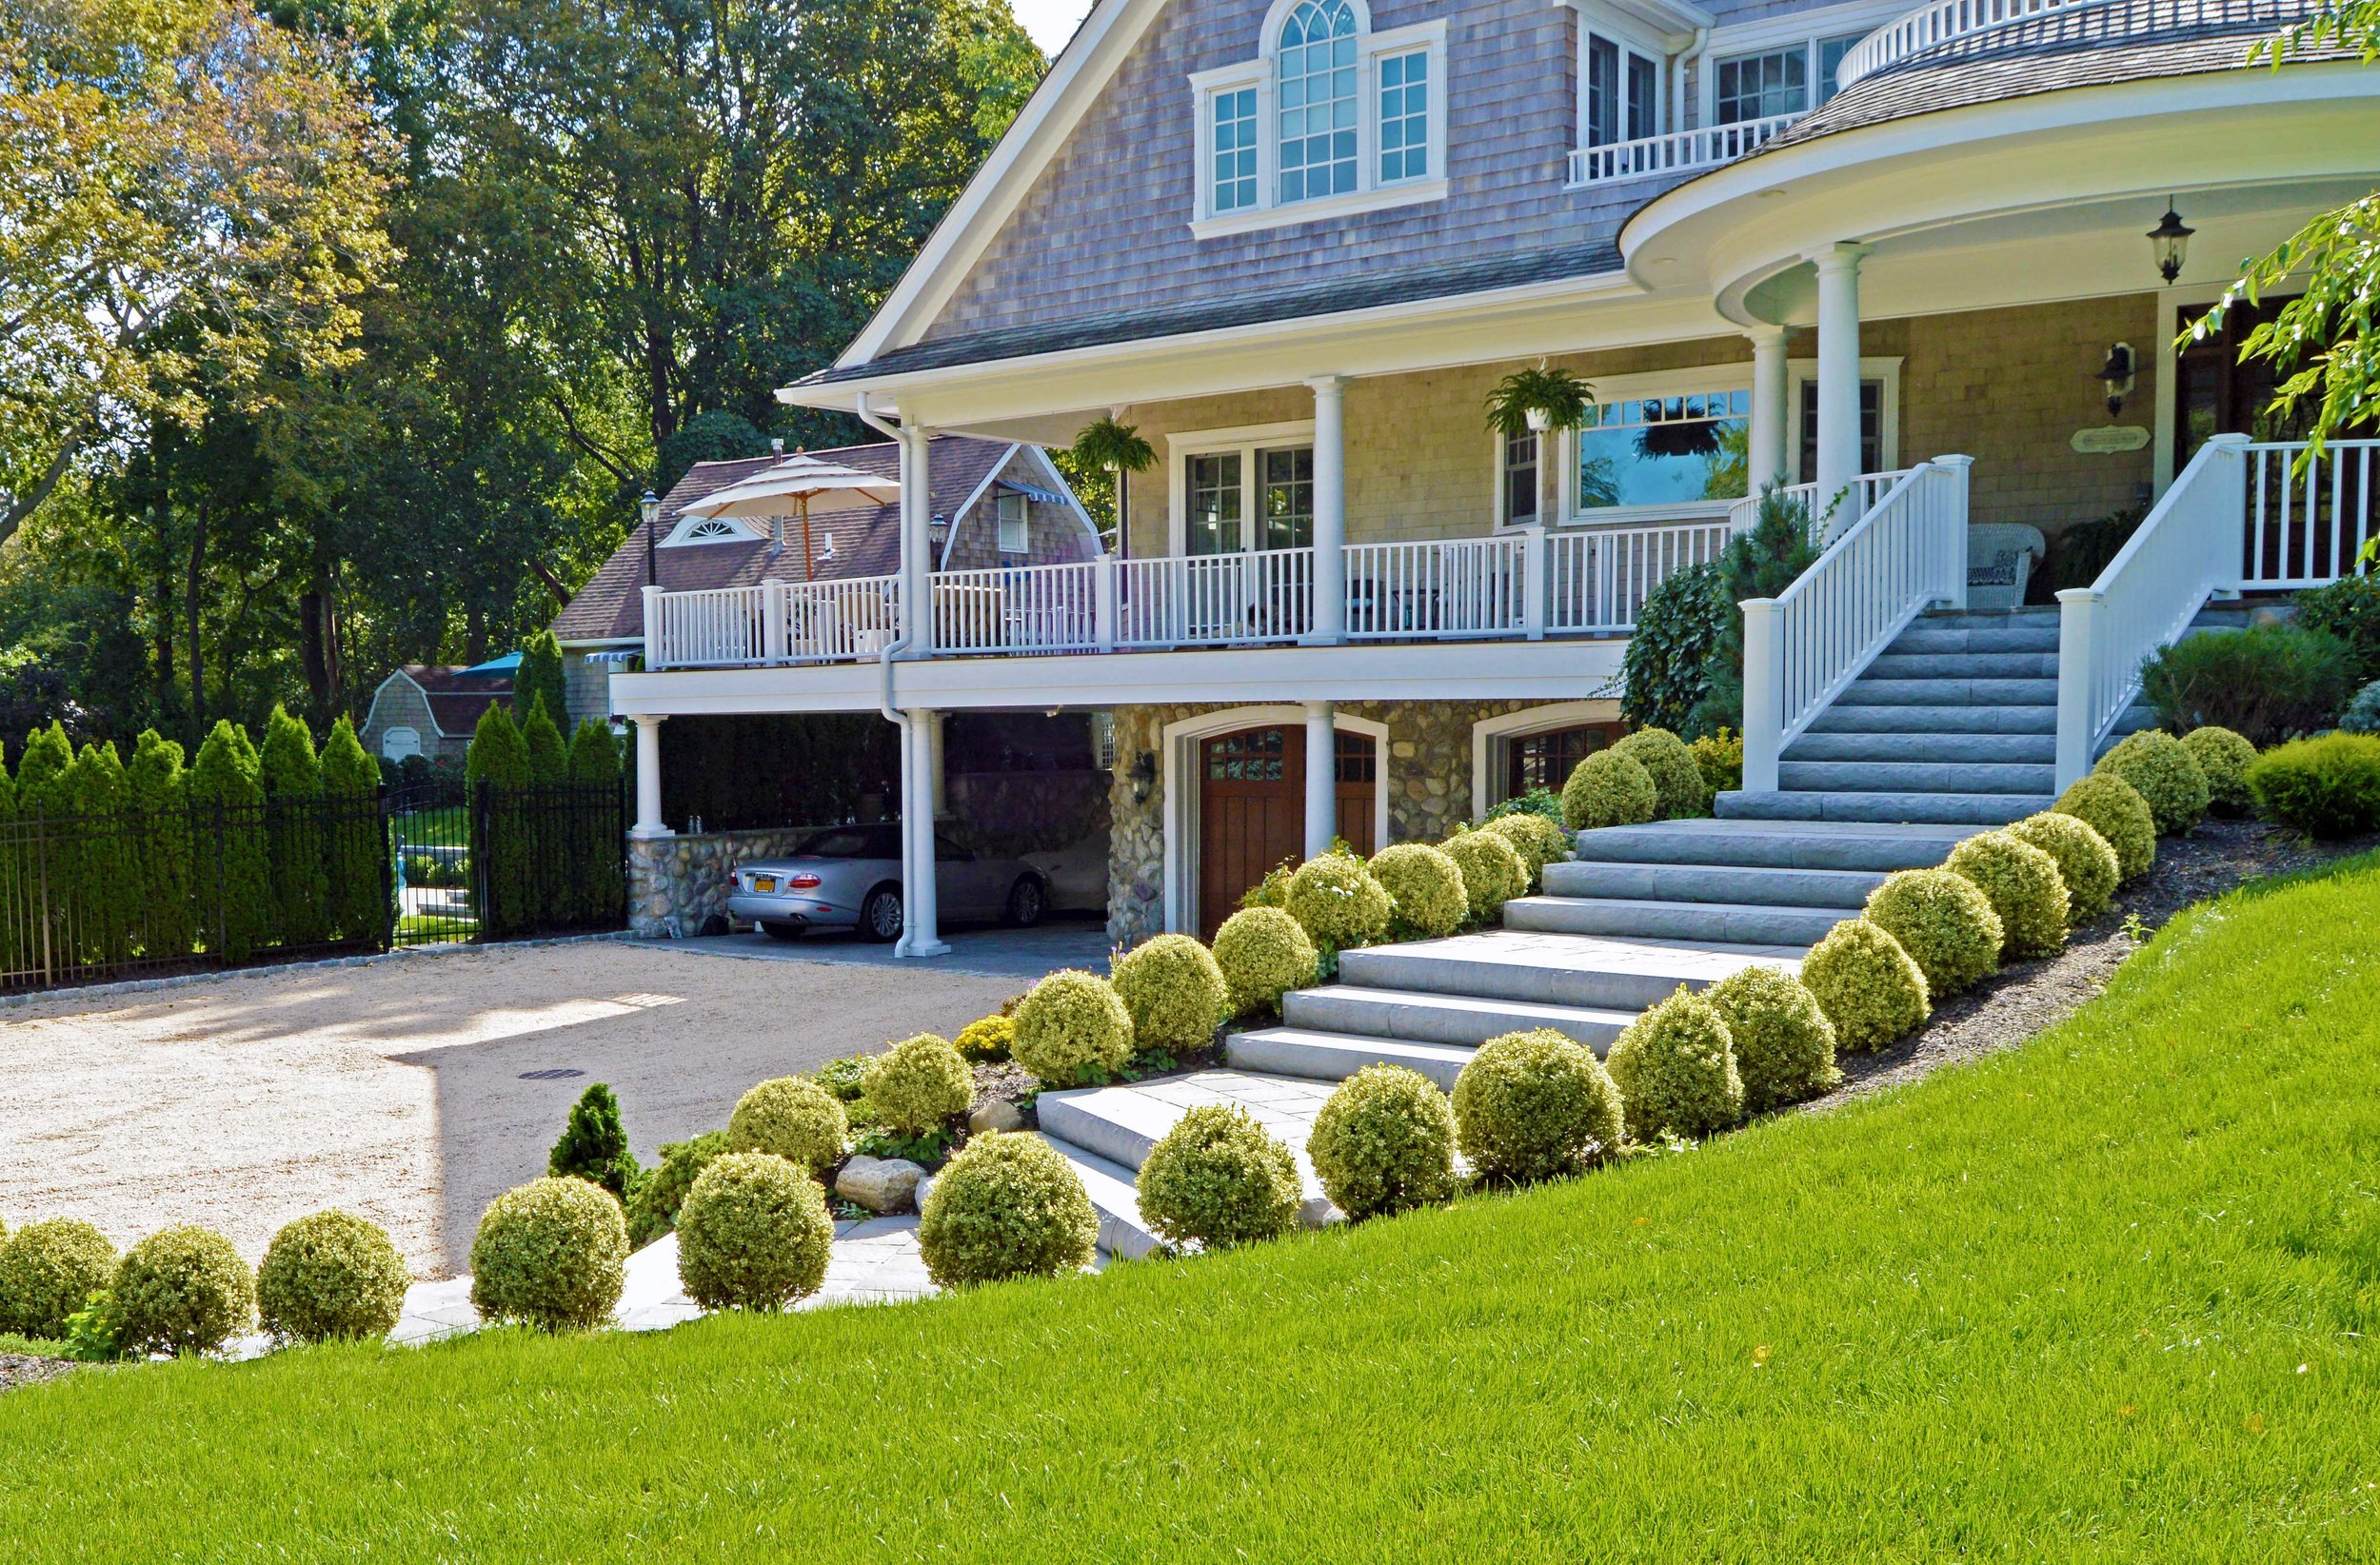 Top landscape architecture in Smithtown, New York